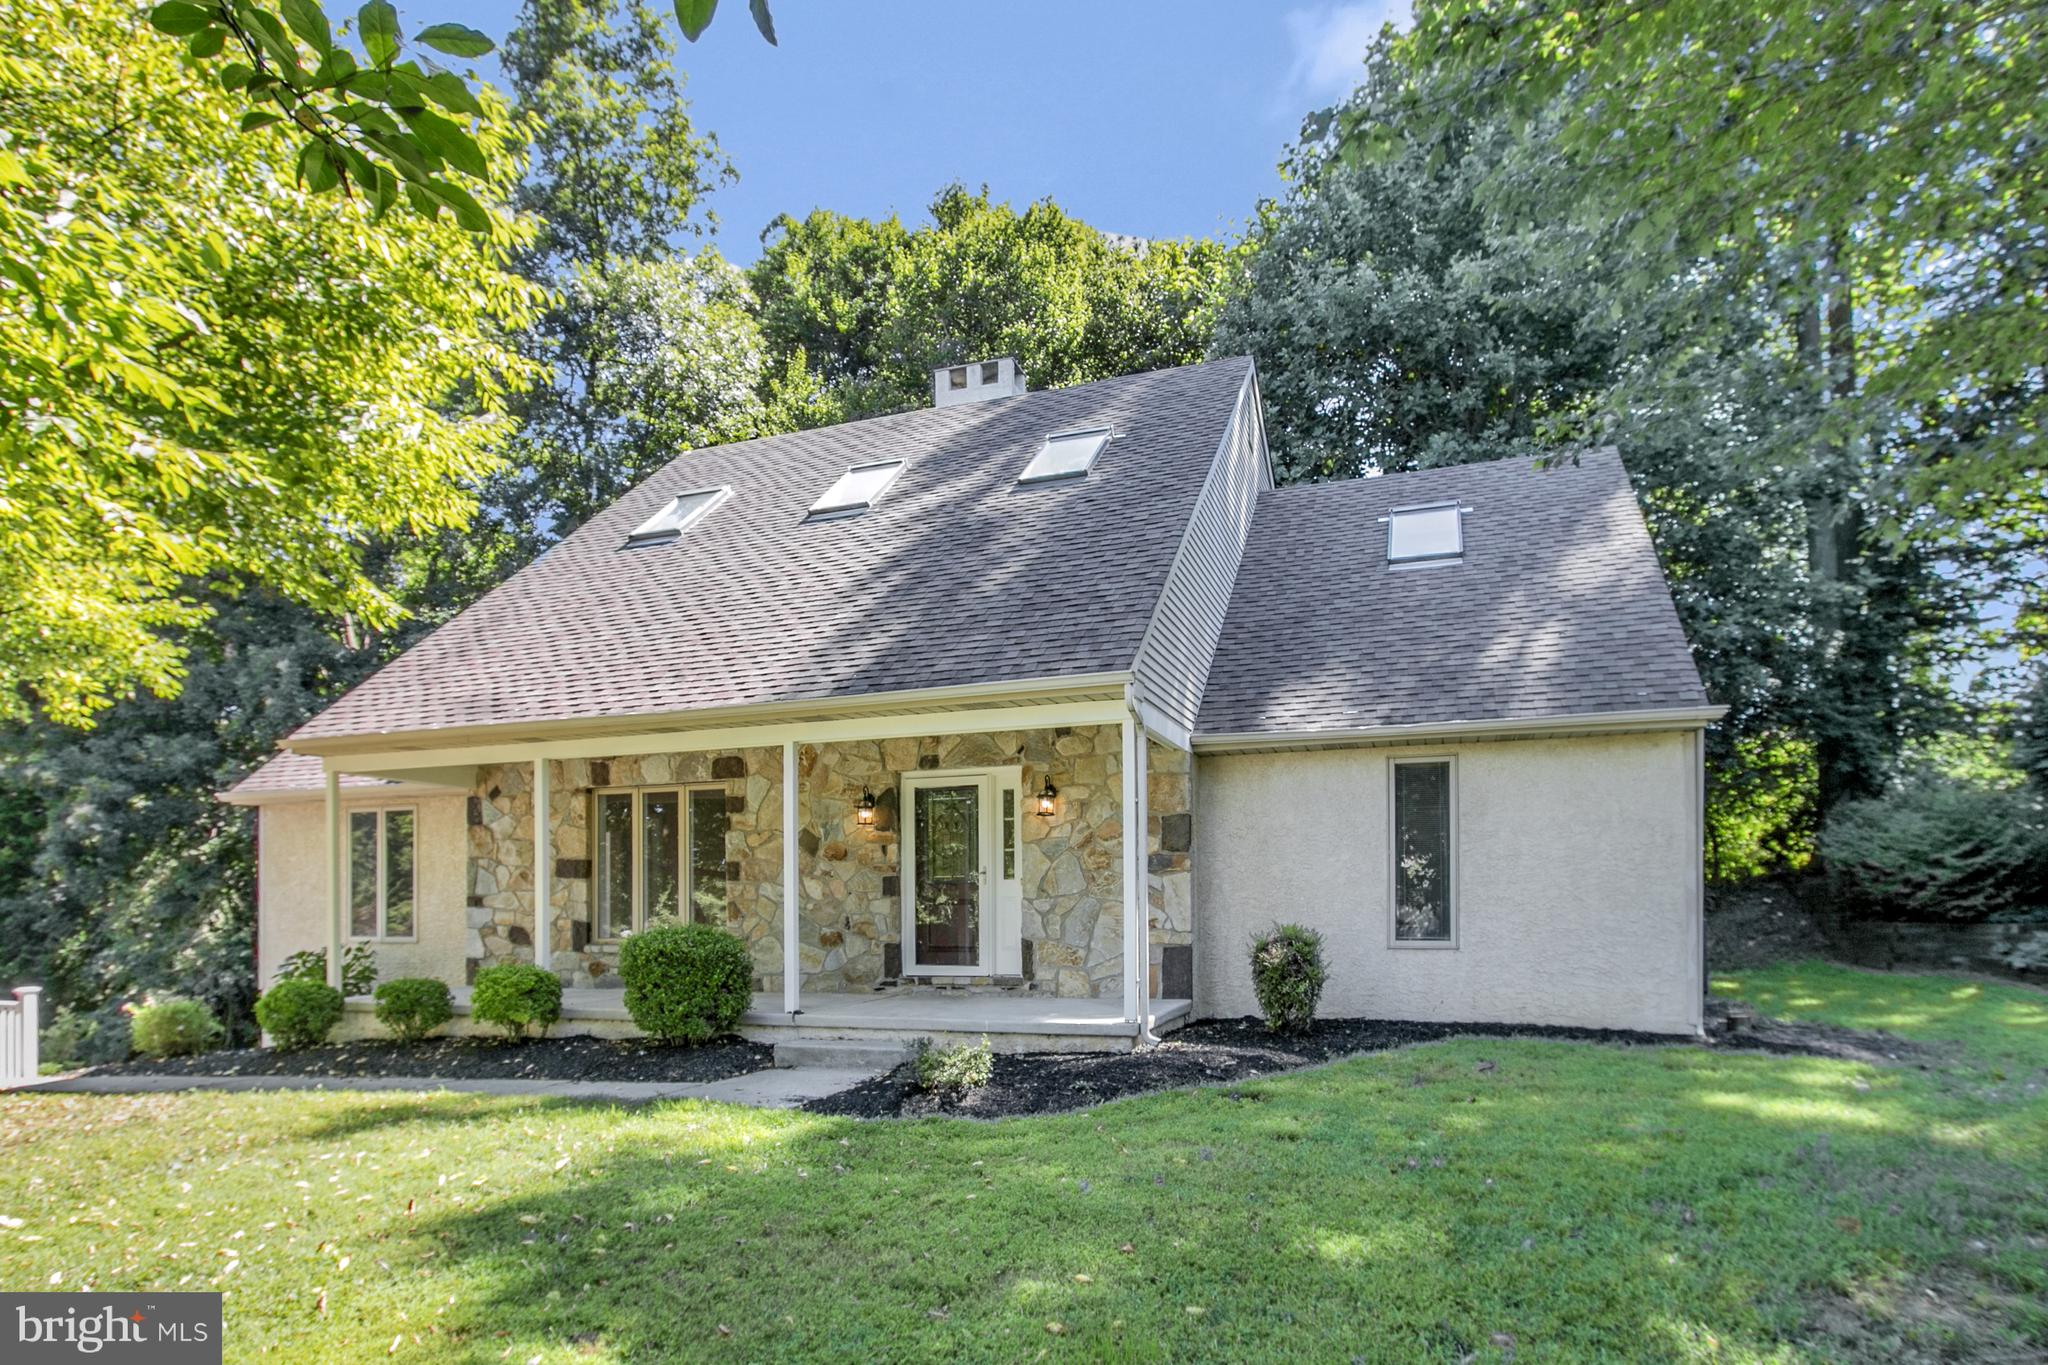 Visit this home virtually: http://www.vht.com/434092449/IDXS - Updated and ready for its new owners!